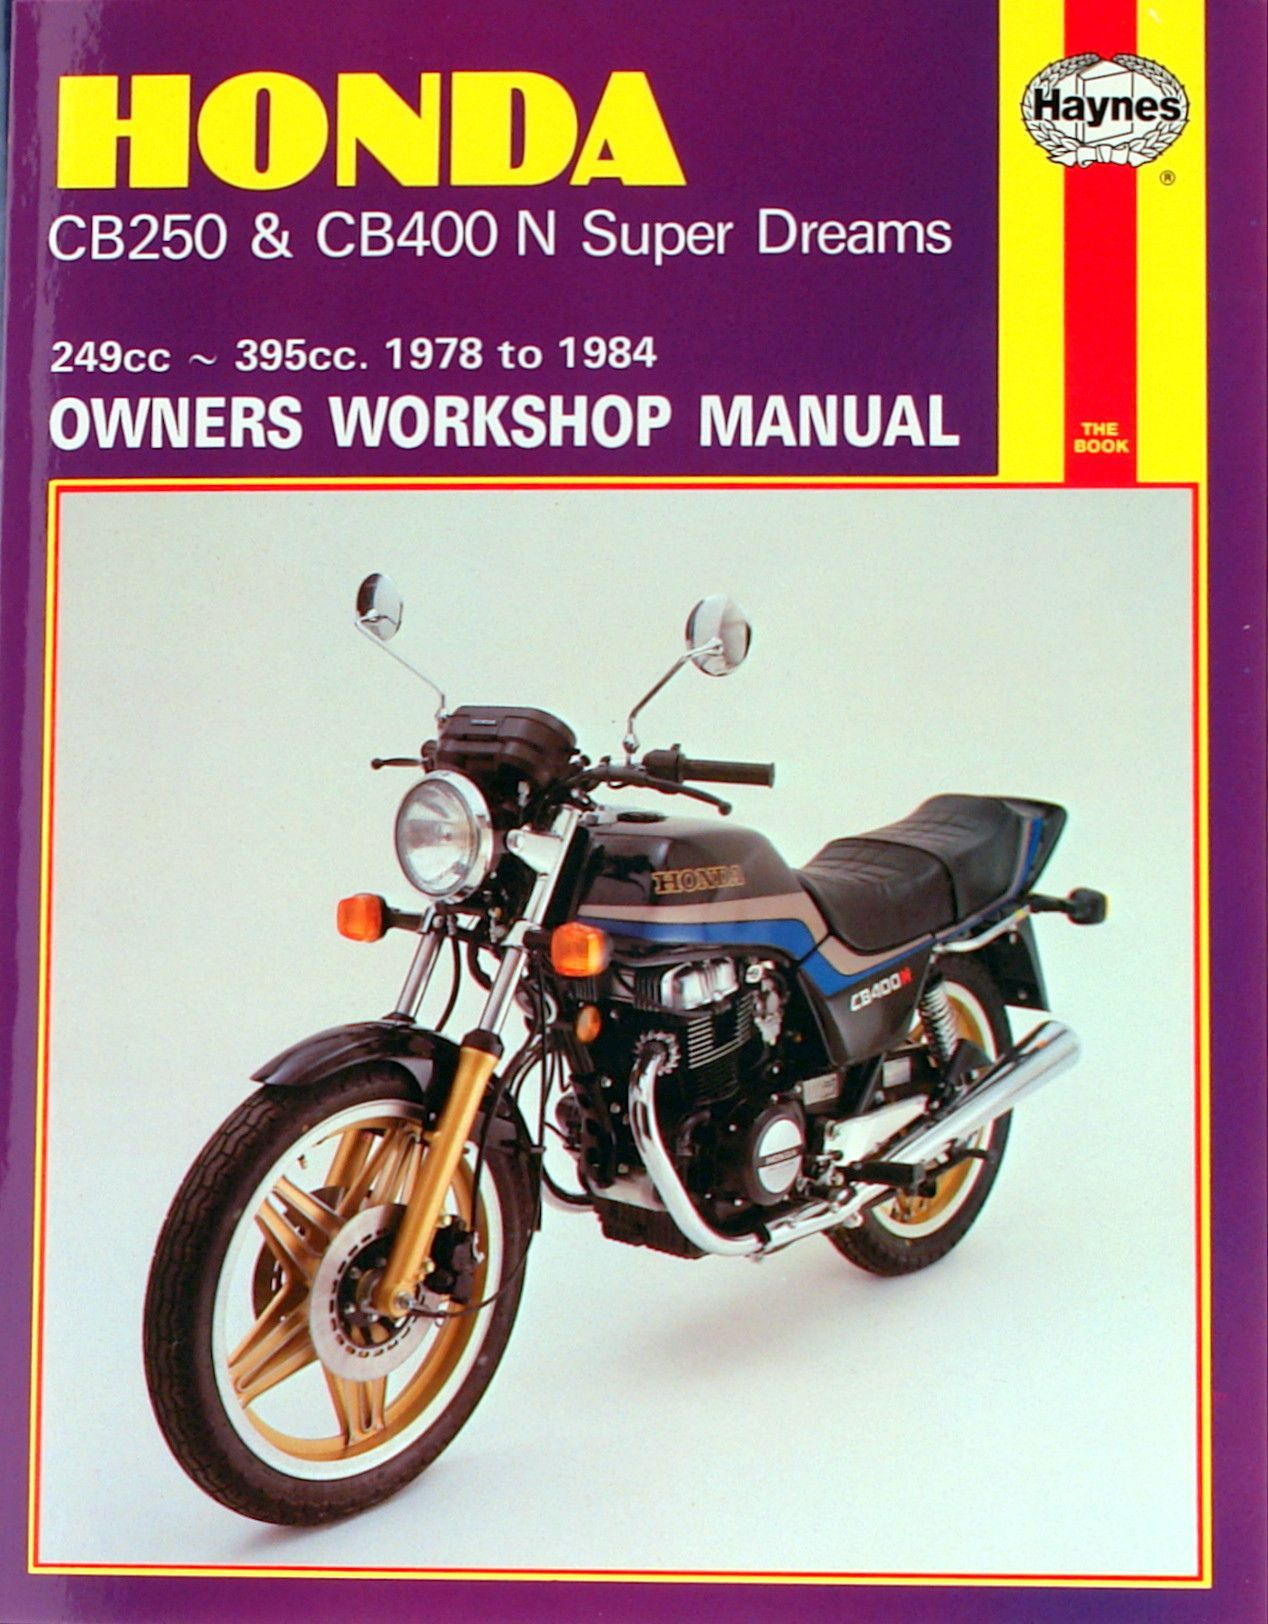 haynes m540 repair manual for 1978 84 honda cb250 and cb400 n super rh pinterest com Honda CB1000R 1978 Honda CB400